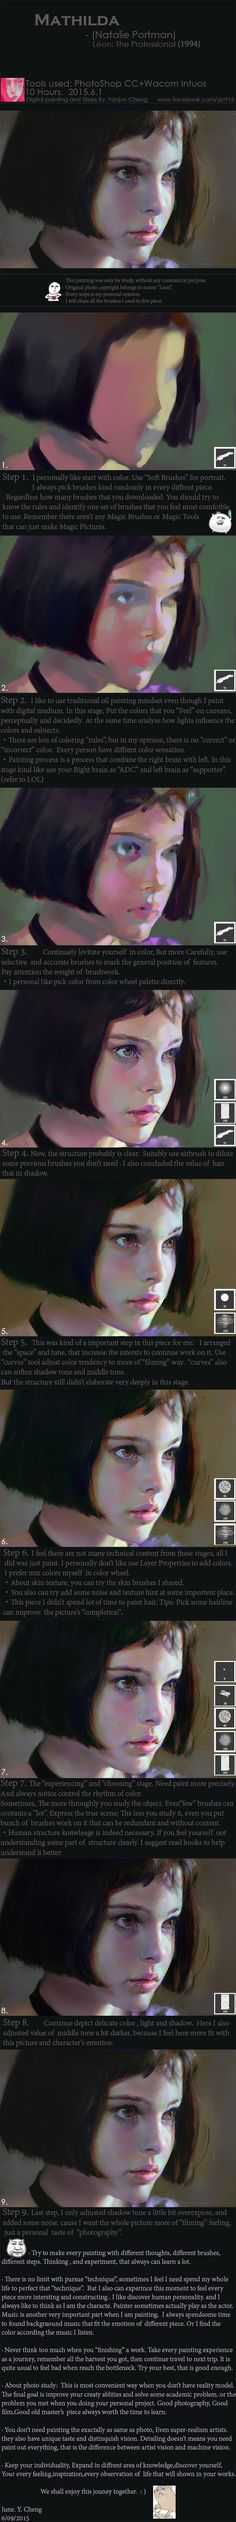 mathilda one of my favorite character in movie leon the professional was